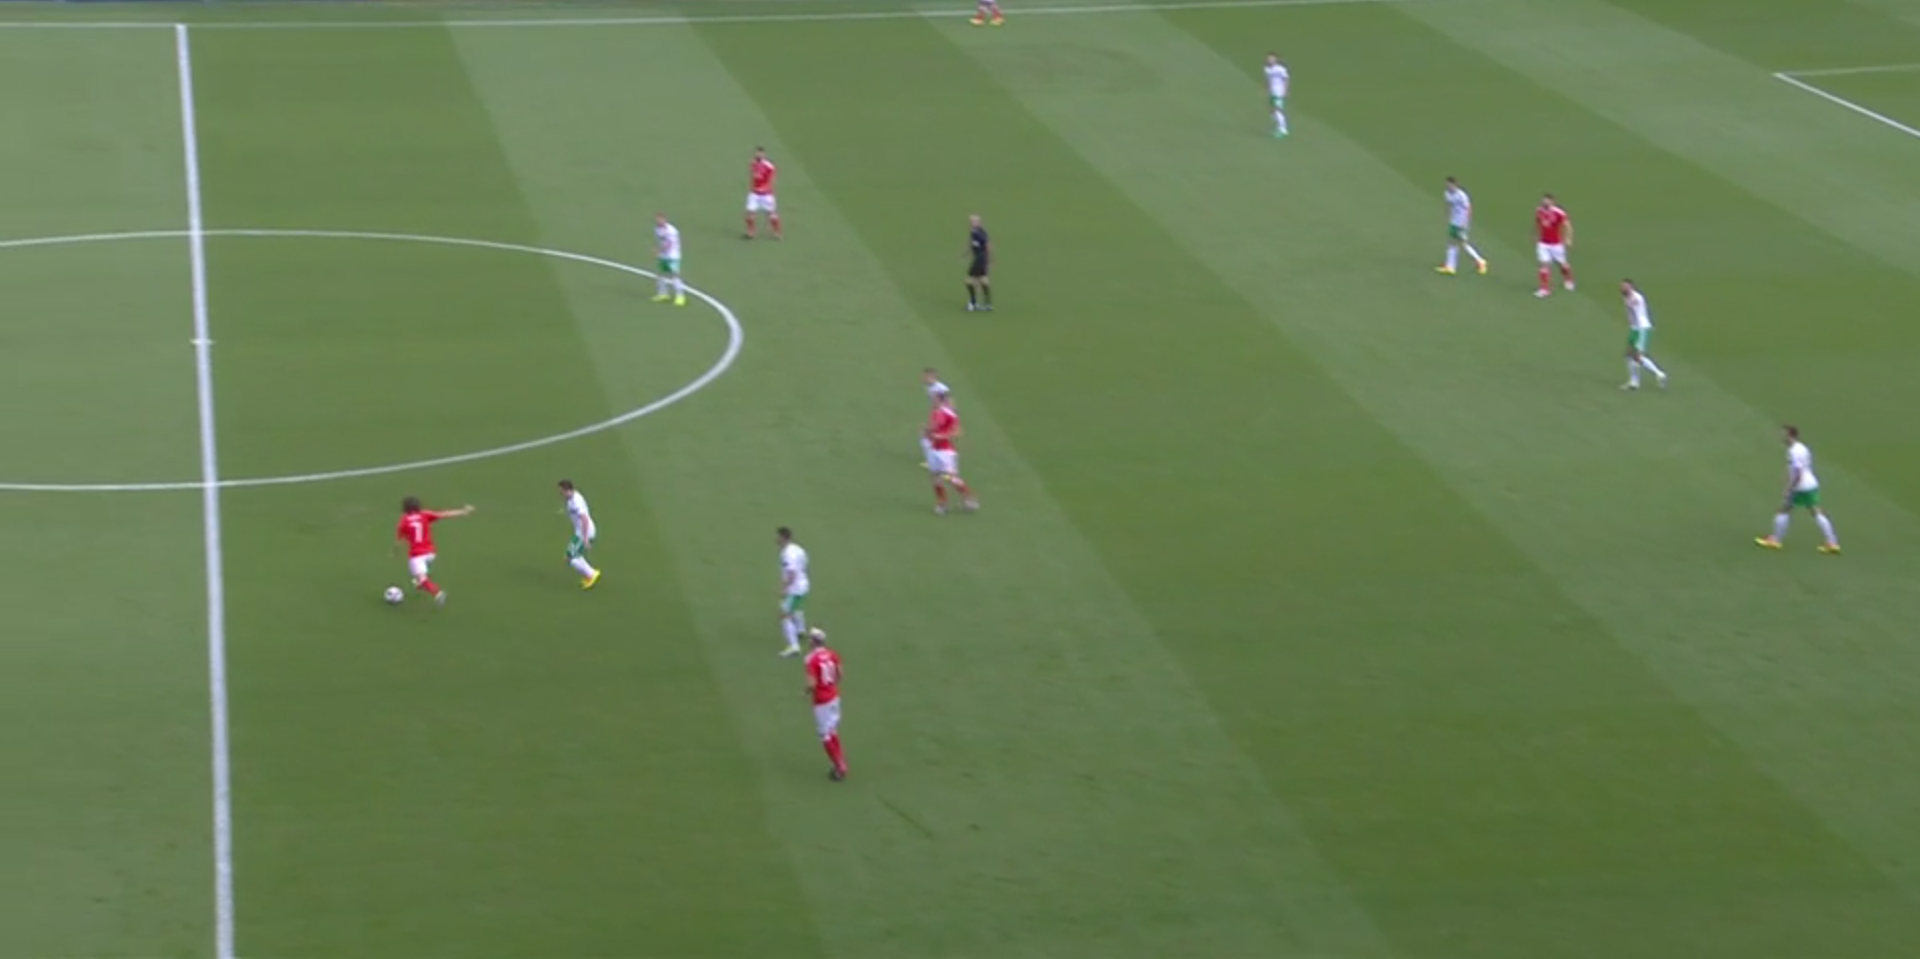 Wales-off-org-1.png - Joe Allen plays a long pass under pressure to the left wing